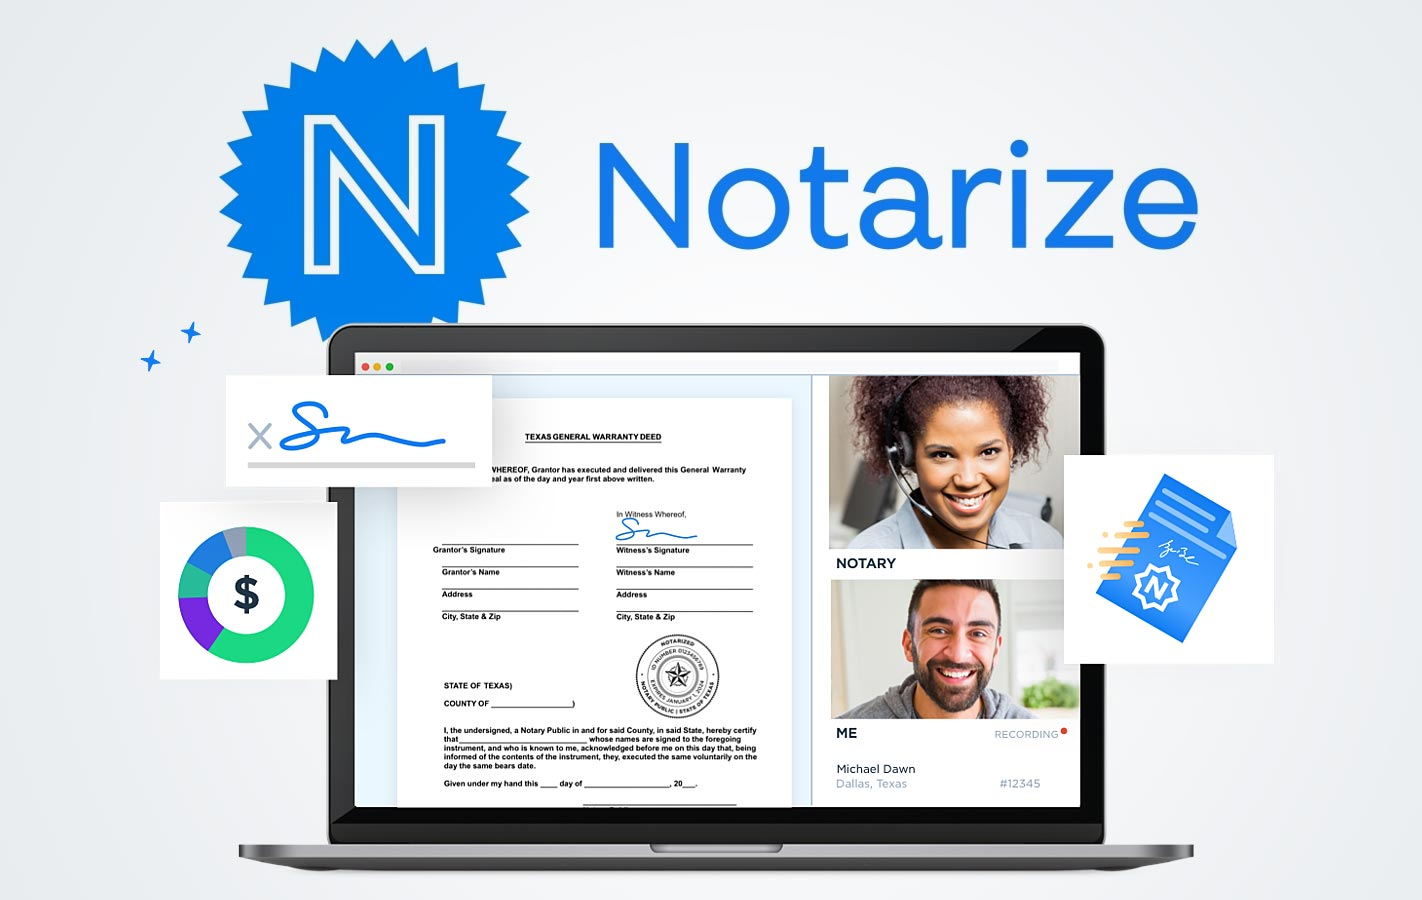 Notarize just raised $130M